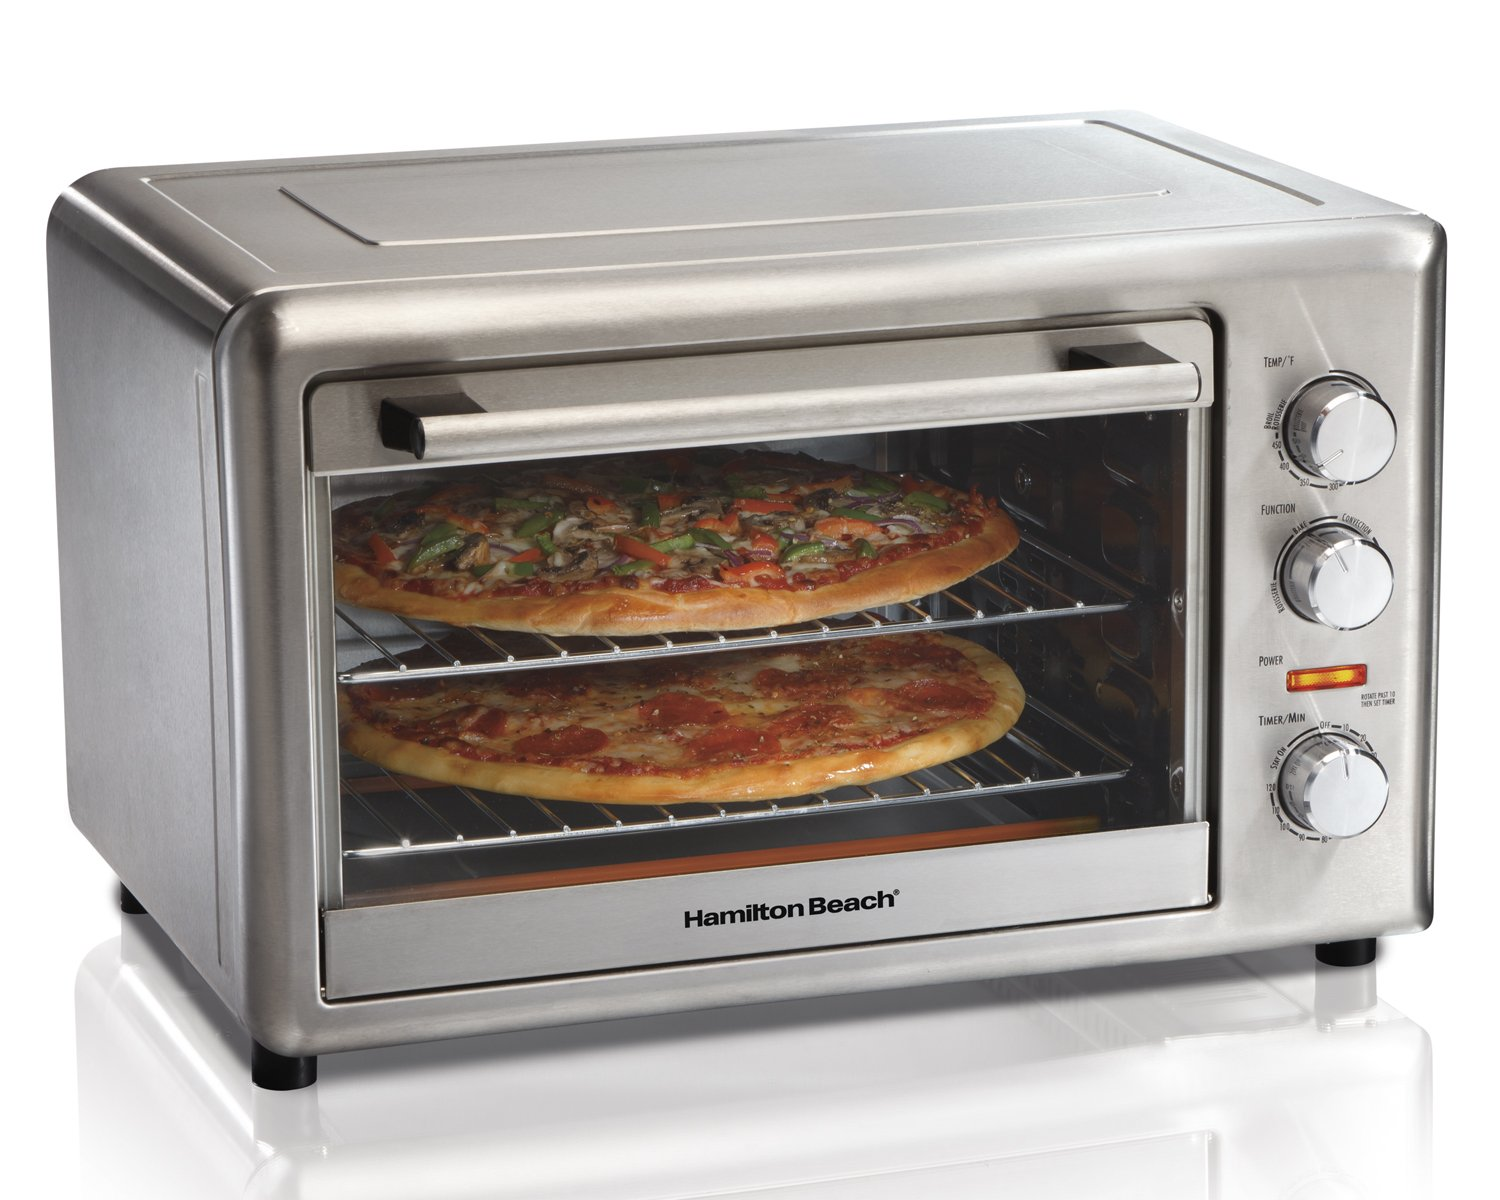 Best Countertop Convection Oven Reviews 2019: Top 5+ Recommended 5 #cookymom